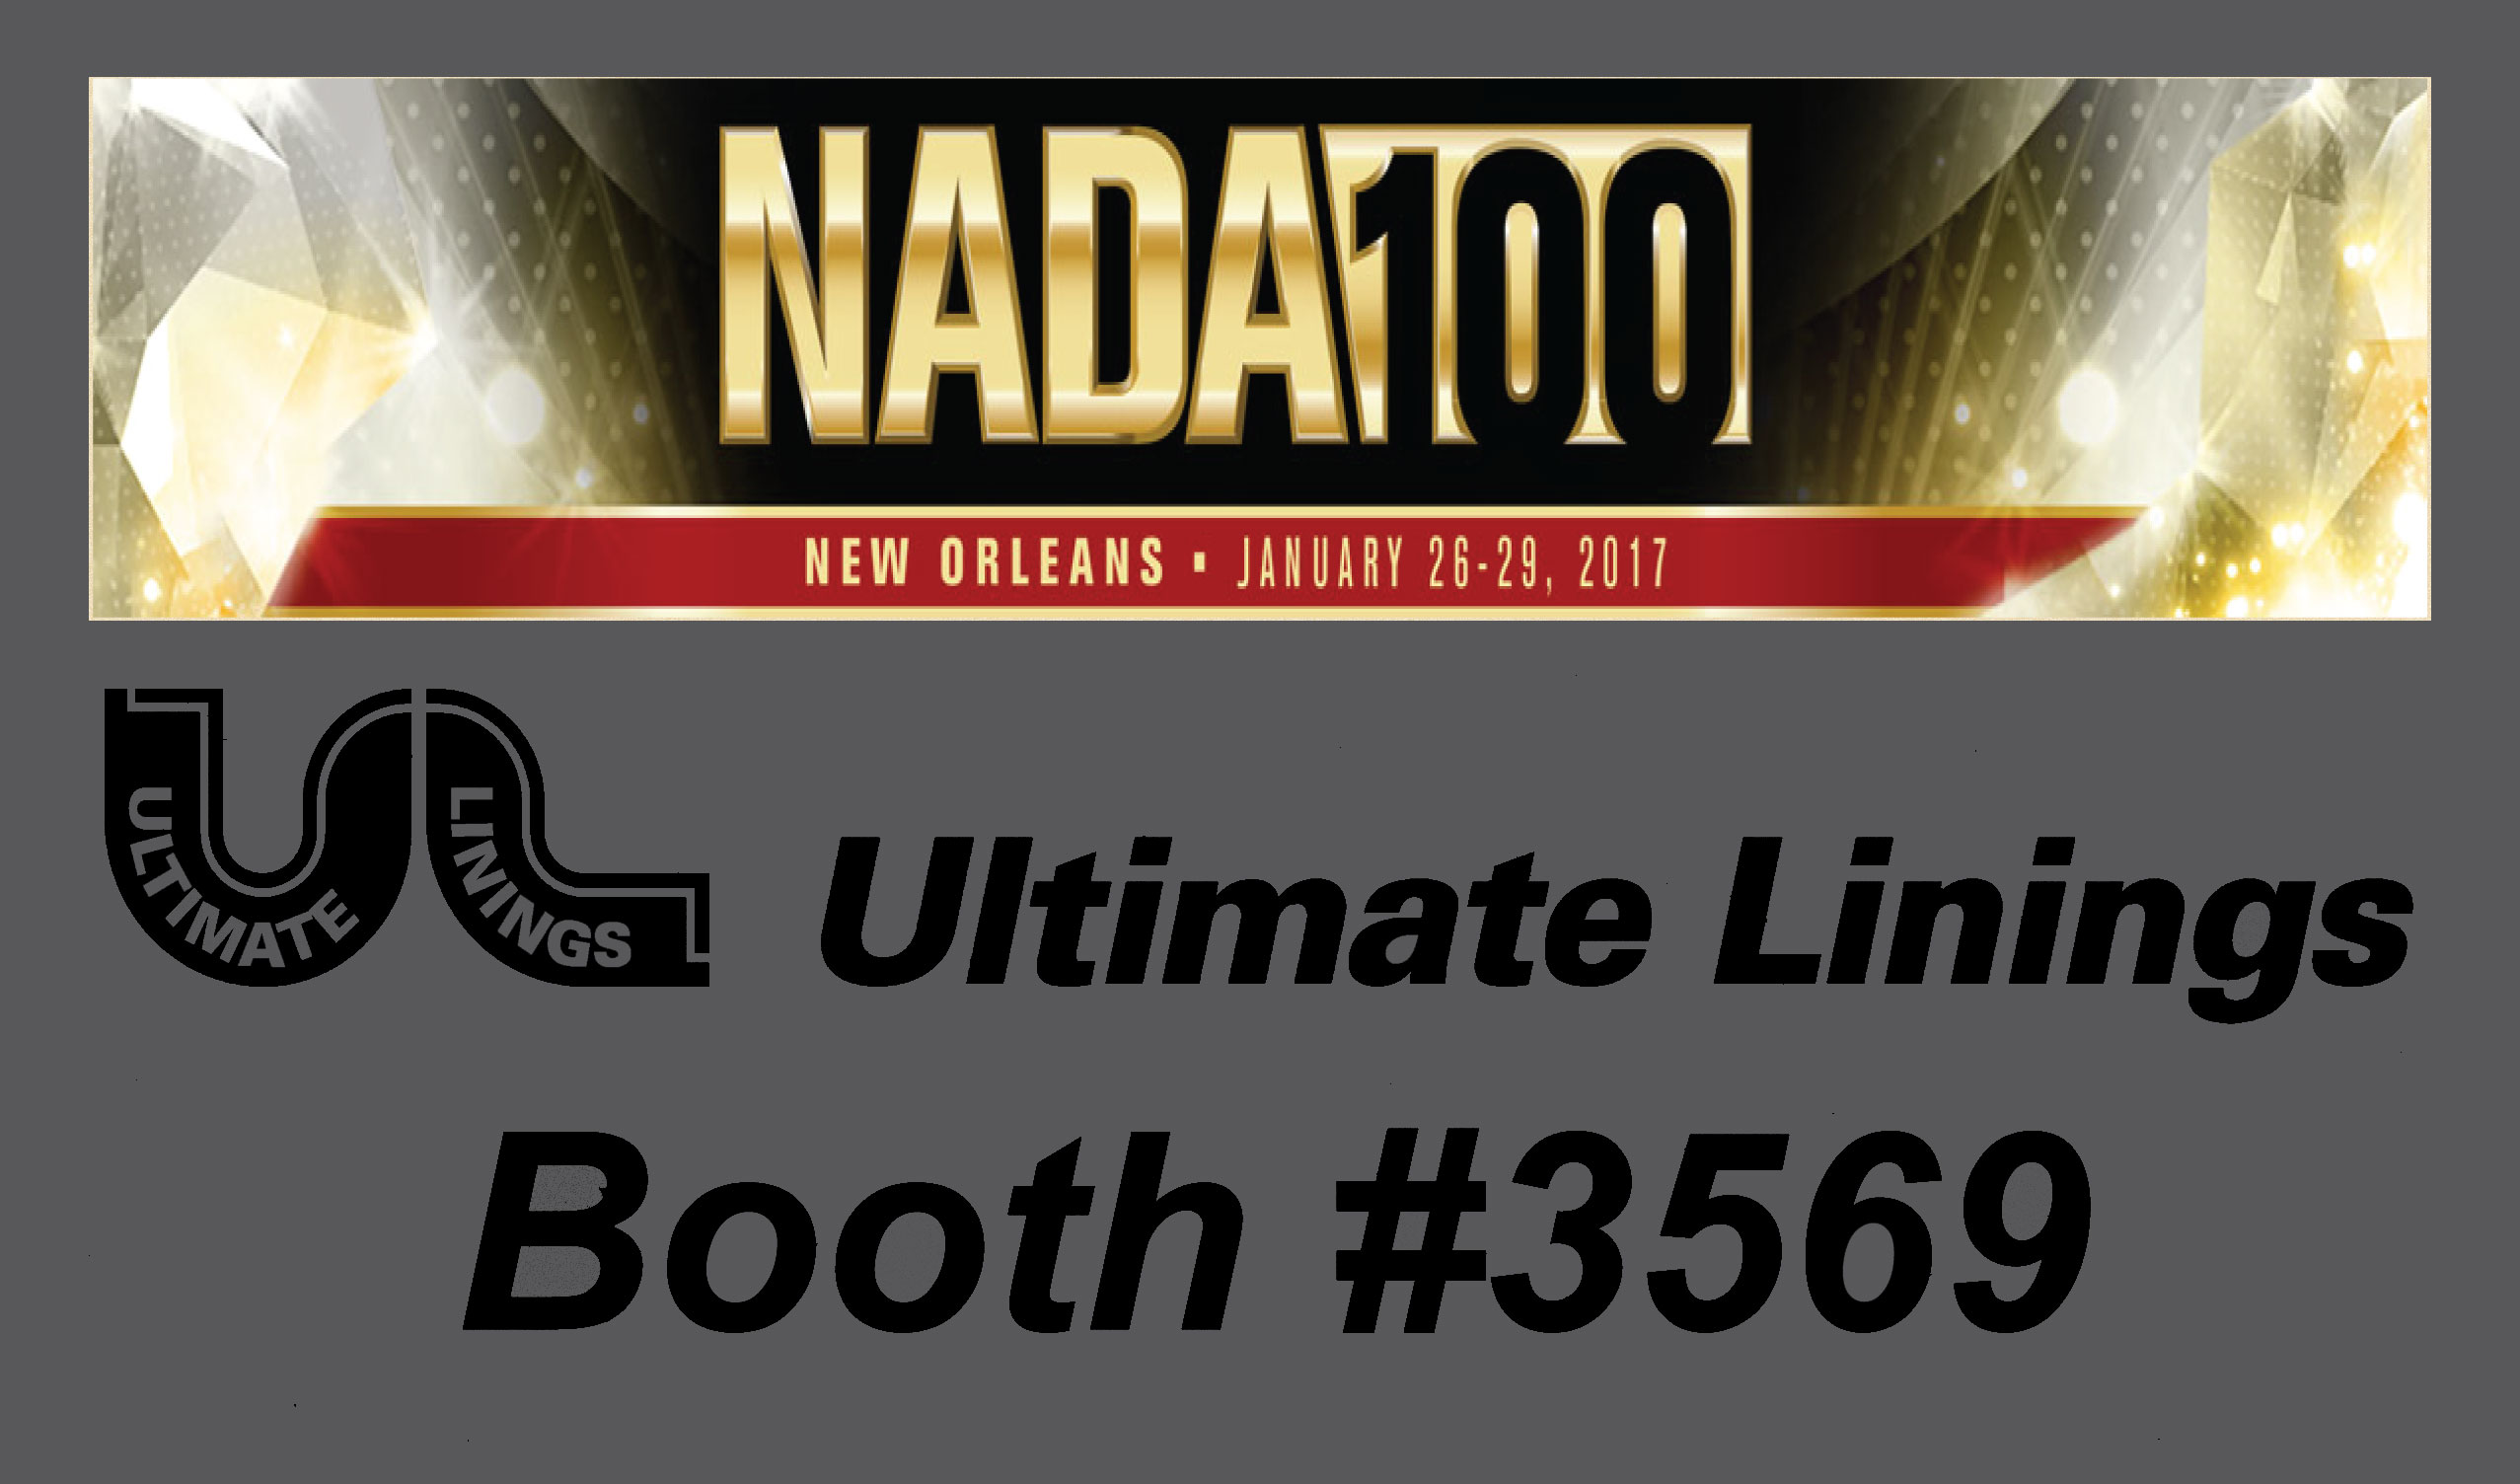 nada Show 2017 Ultimate Linings Booth # 3569